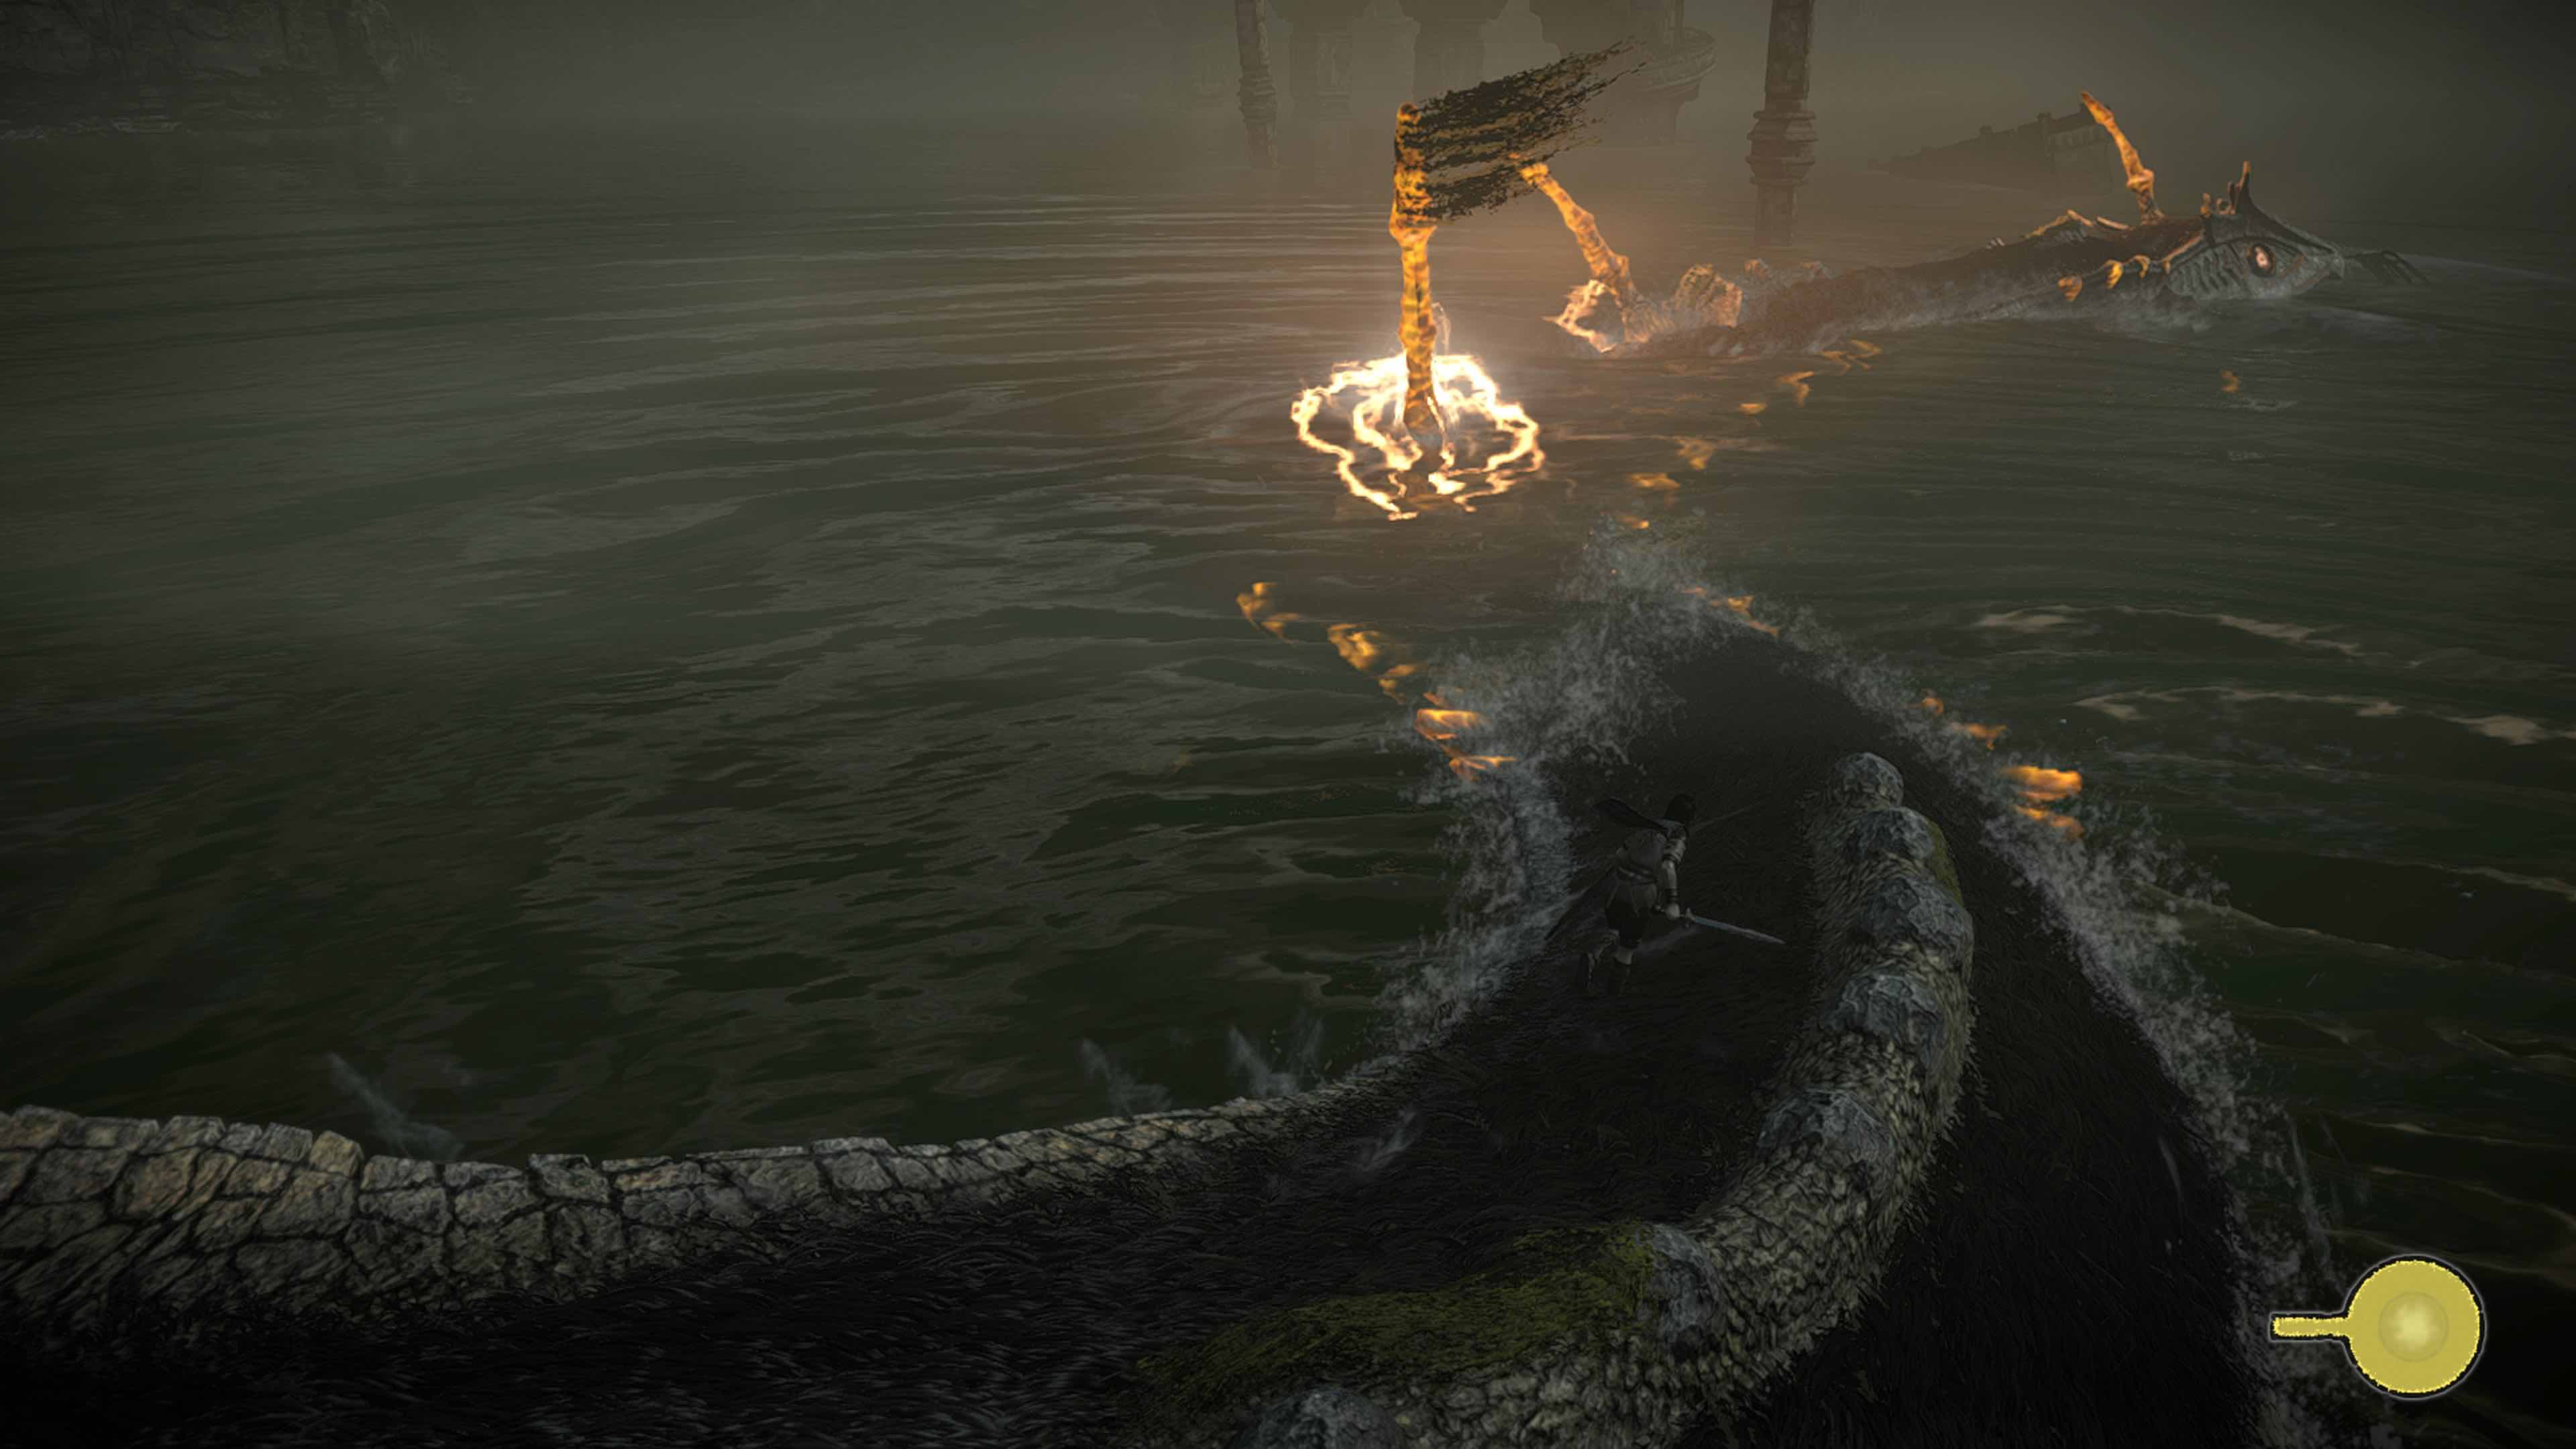 Shadow_of_the_Colossus_Coloso_7_3